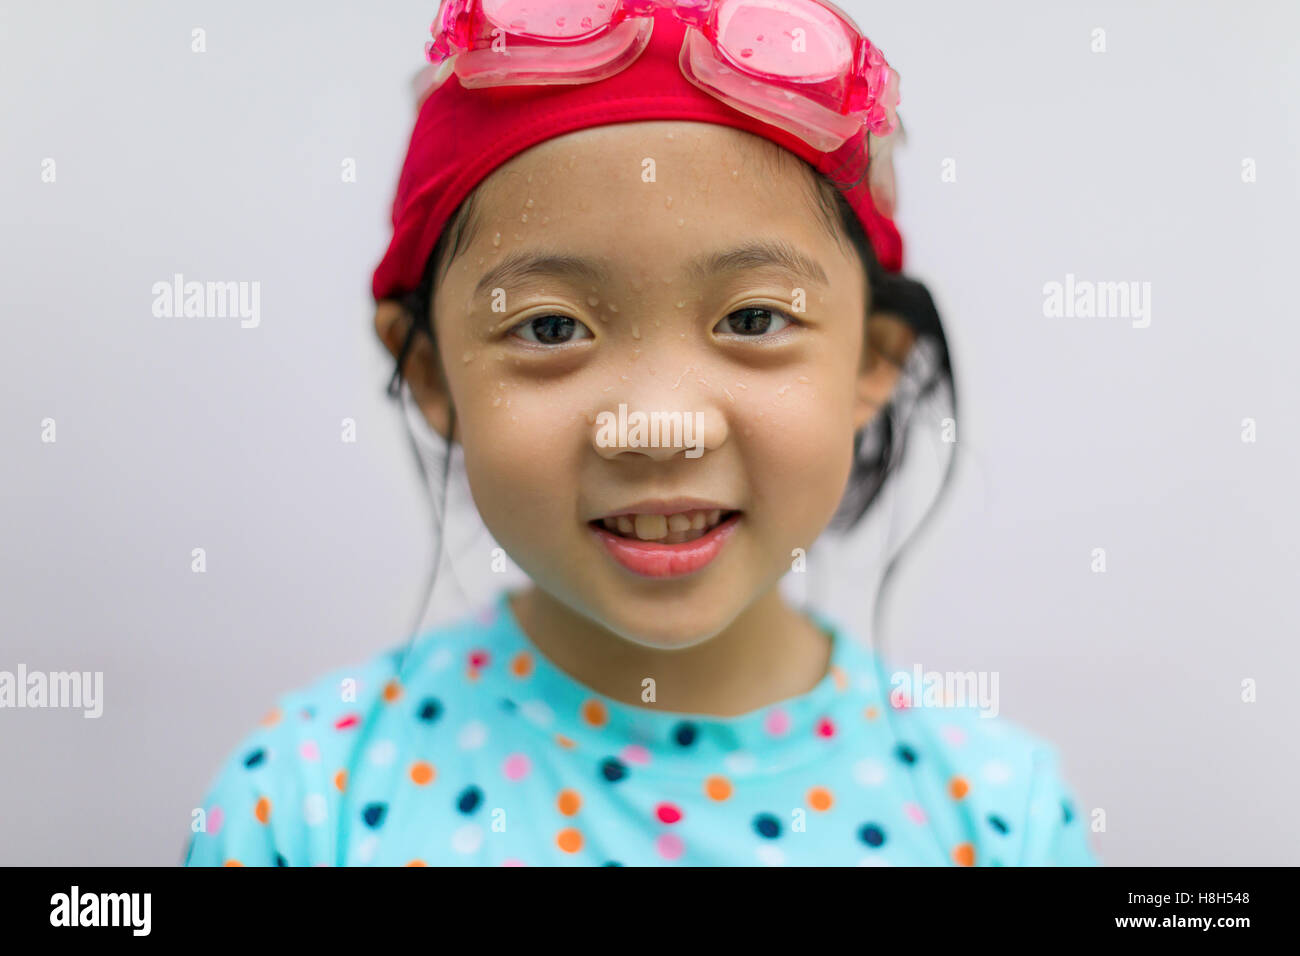 Portrait of Asian child in swimming suit. - Stock Image